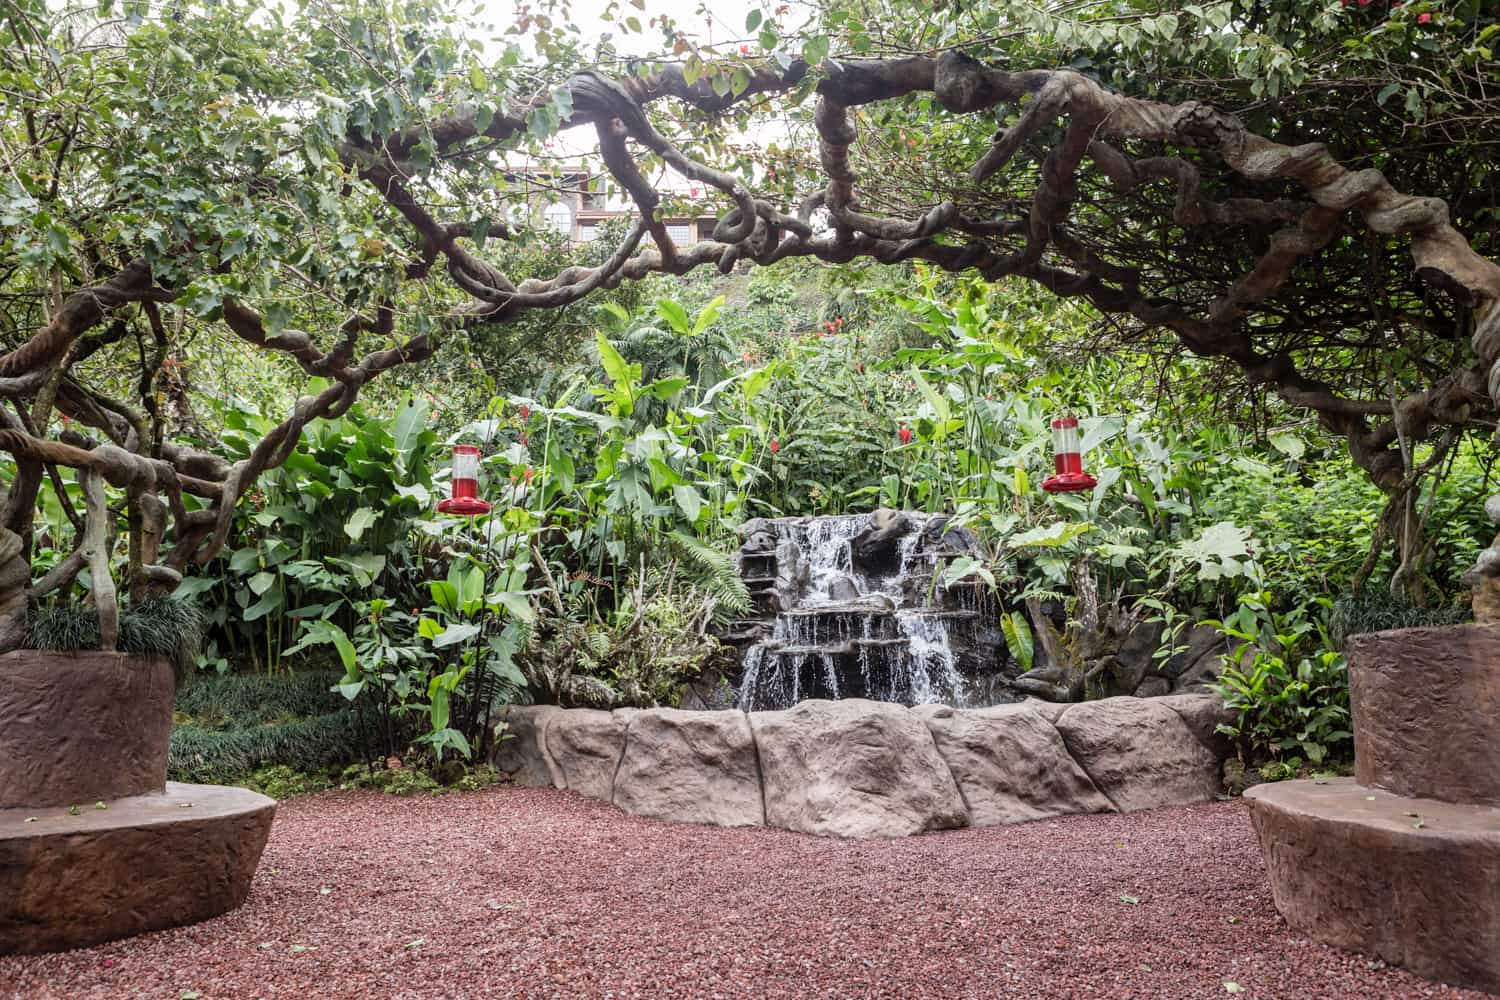 Location for elopement or ceremony under vive-covered arch in hummingbird garden.